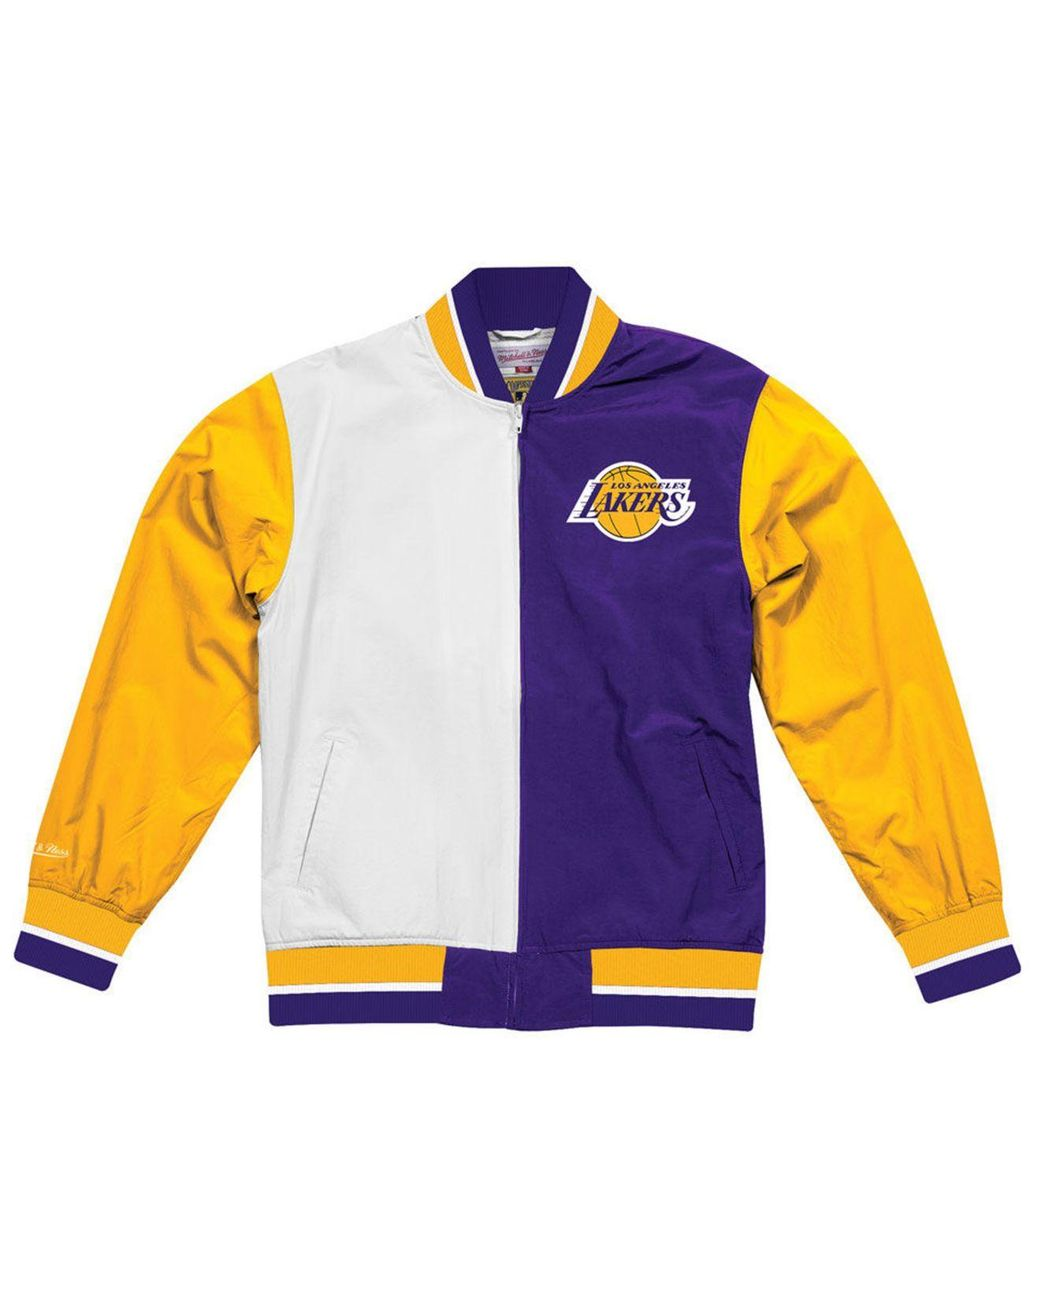 2cc4a47fe4a Mitchell & Ness Los Angeles Lakers History Warm Up Jacket in Purple for Men  - Lyst